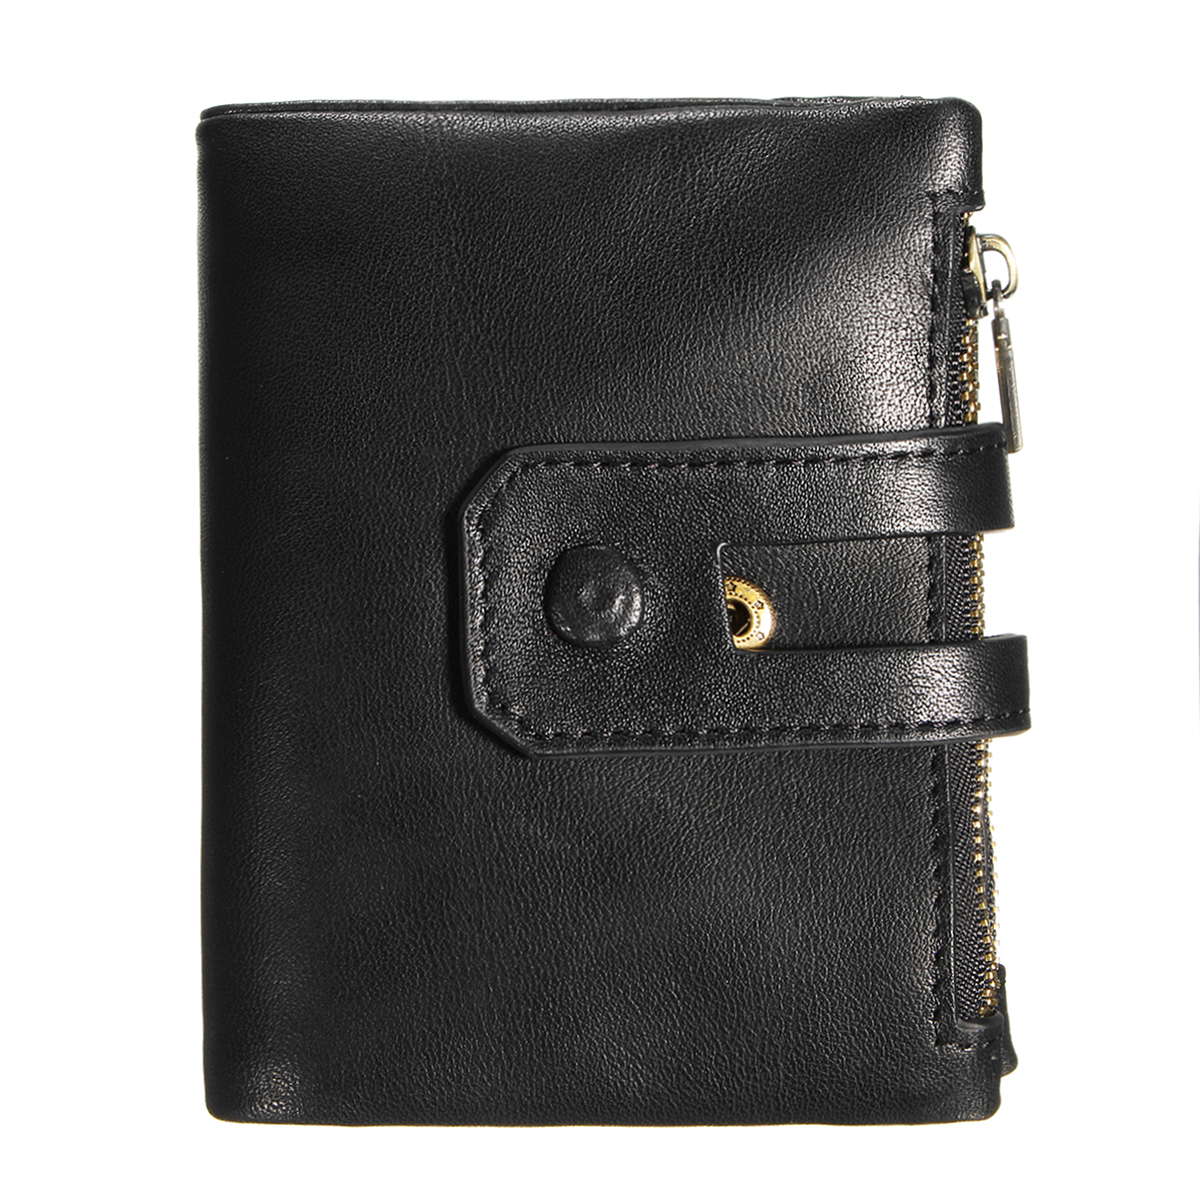 Outdoor Travel Men Slim RFID Leather Bifold Wallet Card Holder Purse Billfold Pocket